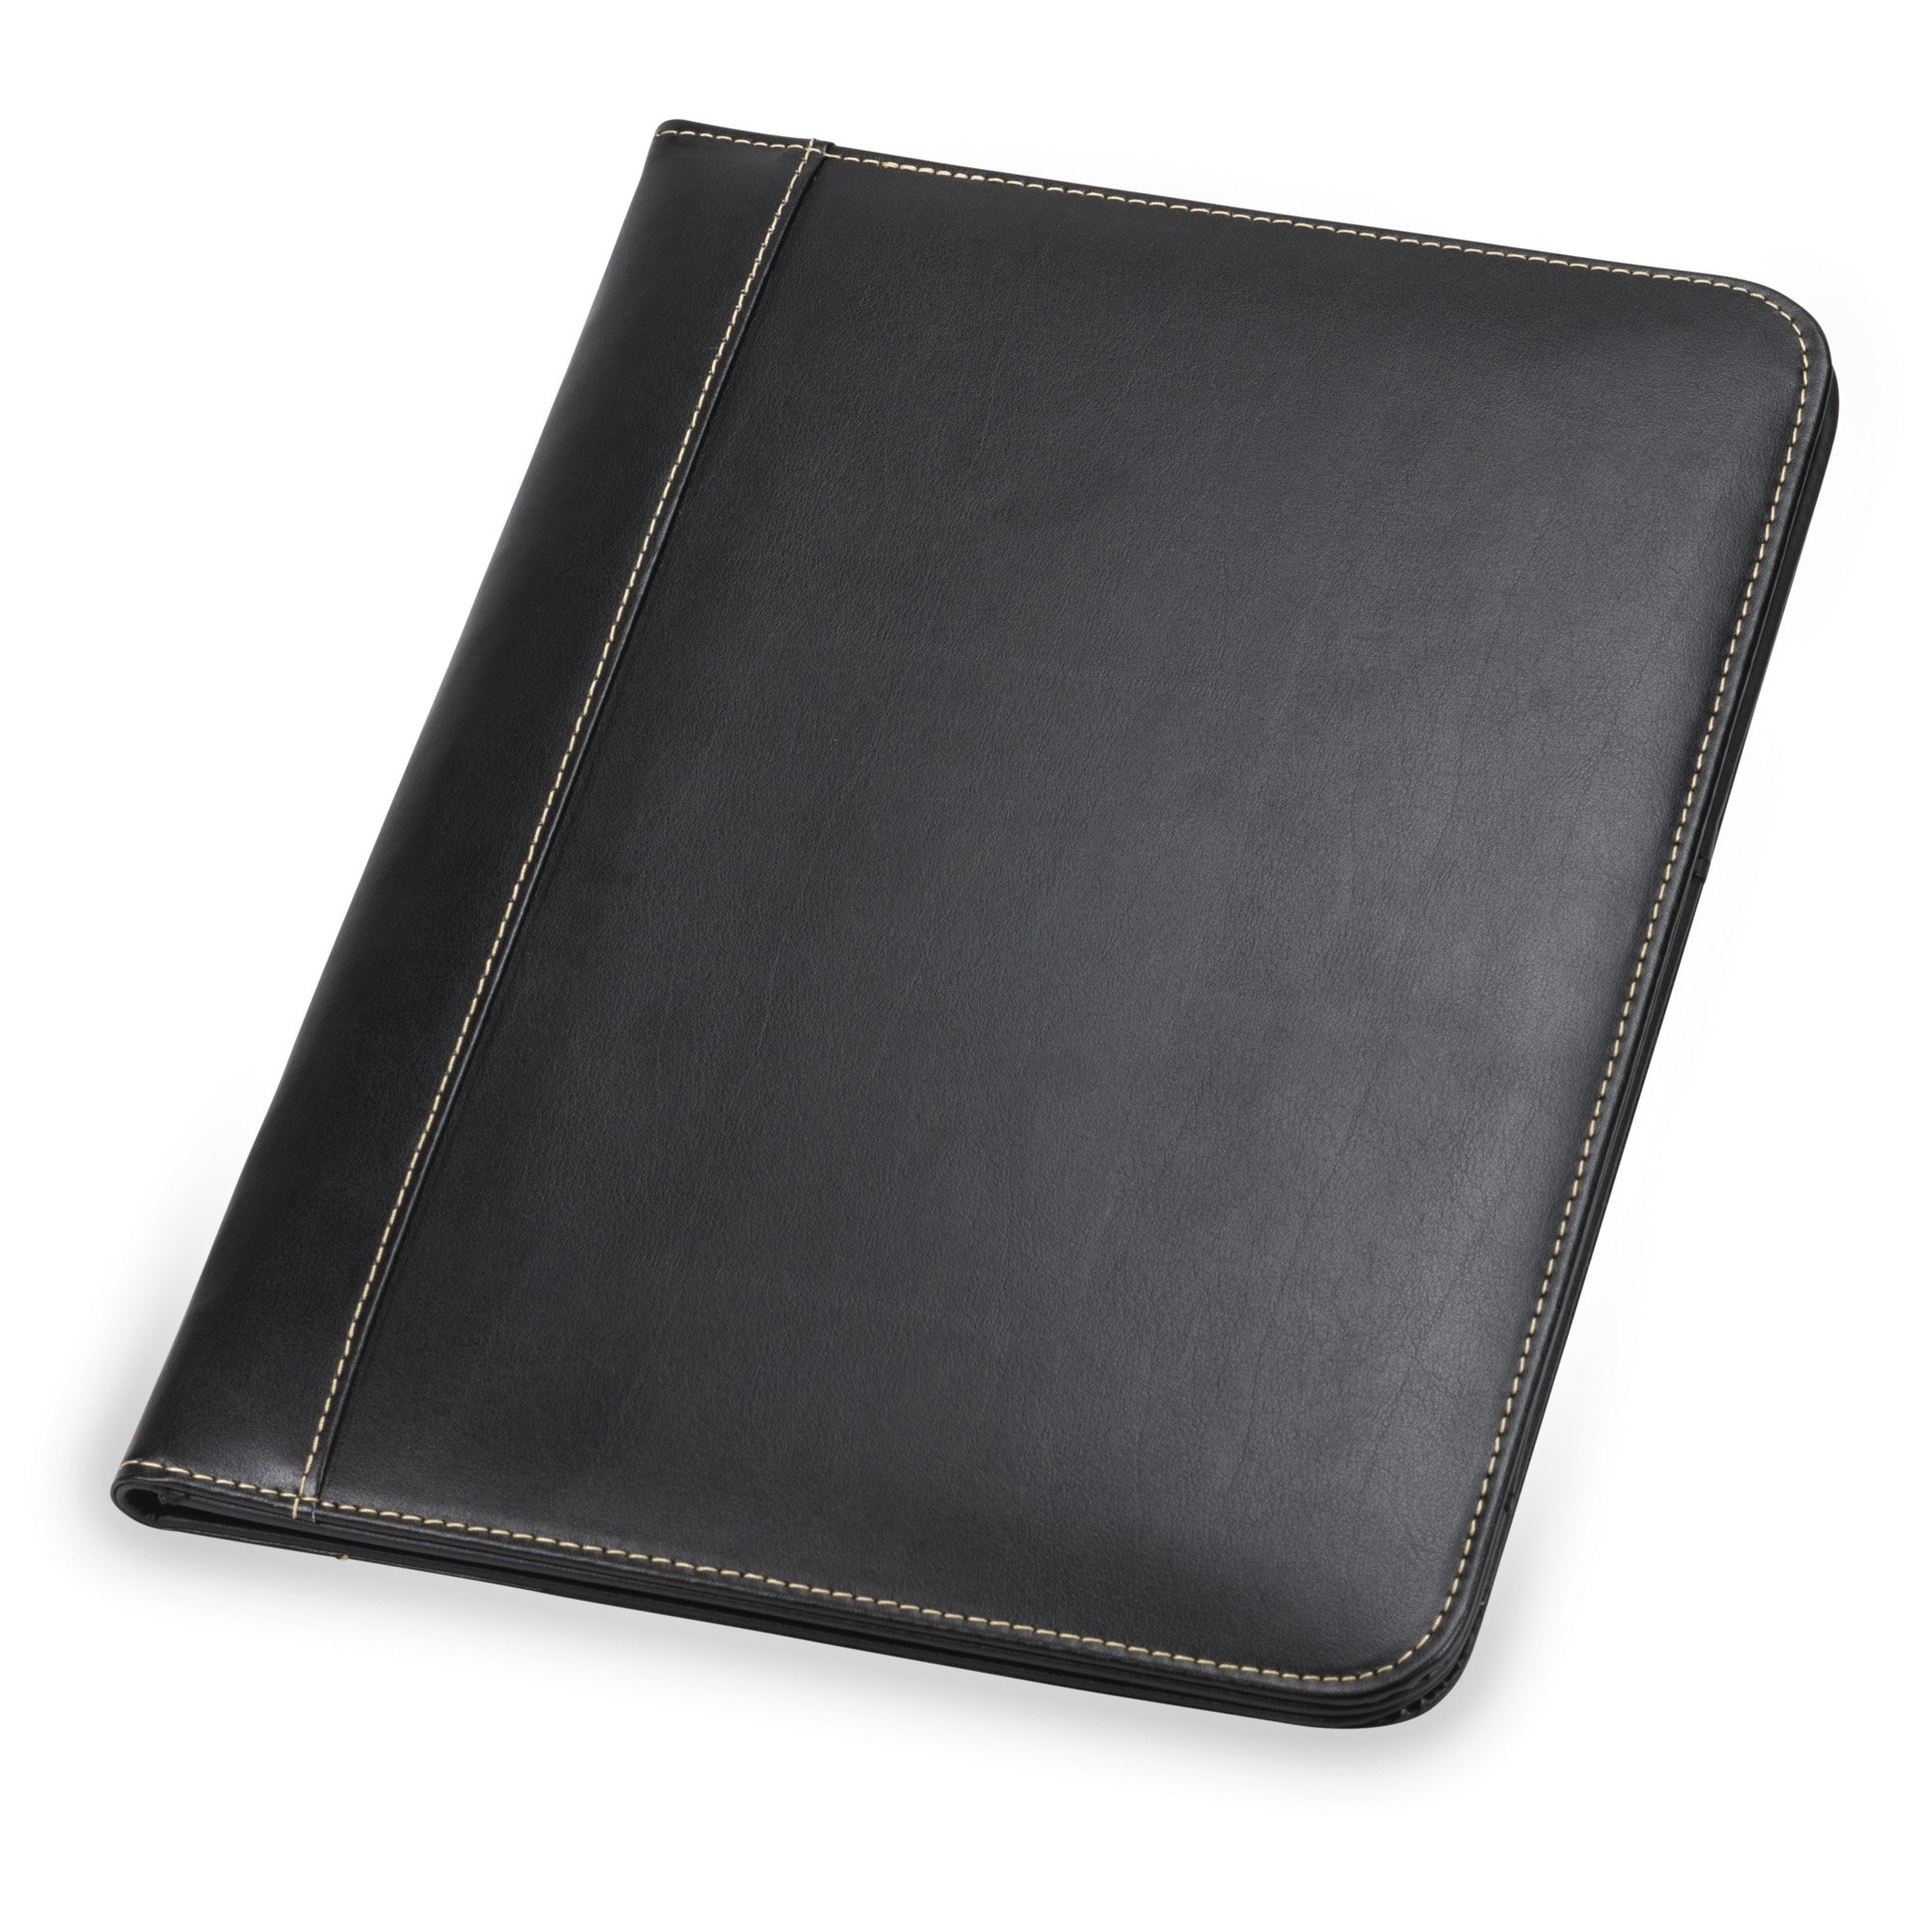 Samsill 71710 Contrast Stitch Leather Padfolio - Lightweight & Stylish Business Portfolio for Men & Women - Resume Portfolio, 8.5 x 11 Writing Pad, Black by Samsill